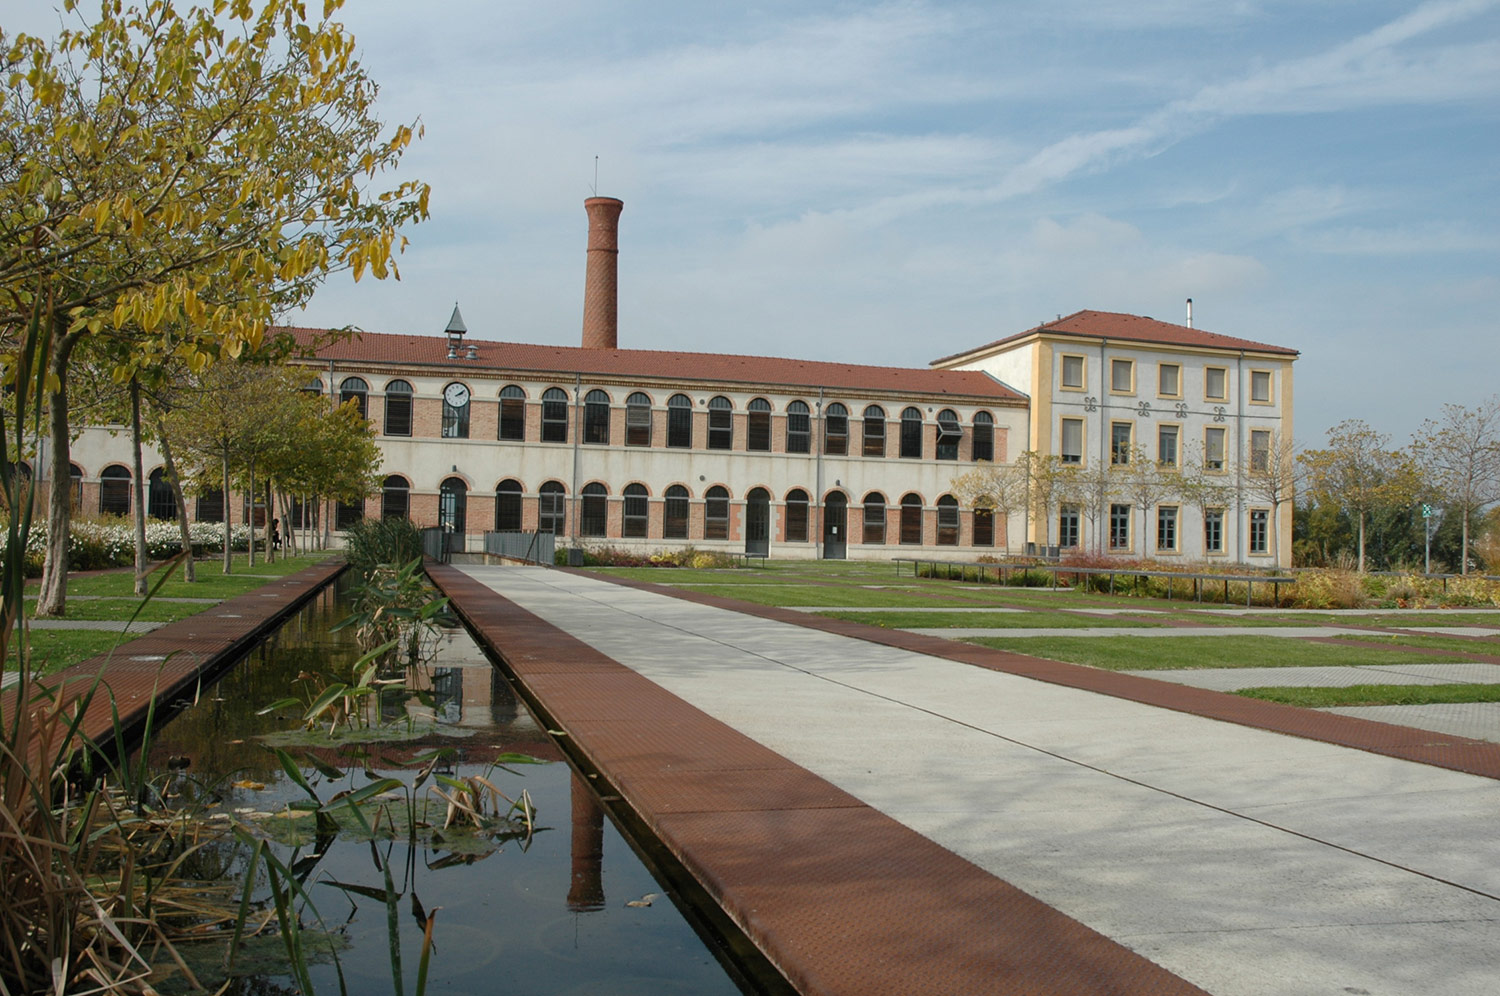 The school is located in La Cartoucherie building, a former 19th-century military cartridge factory.